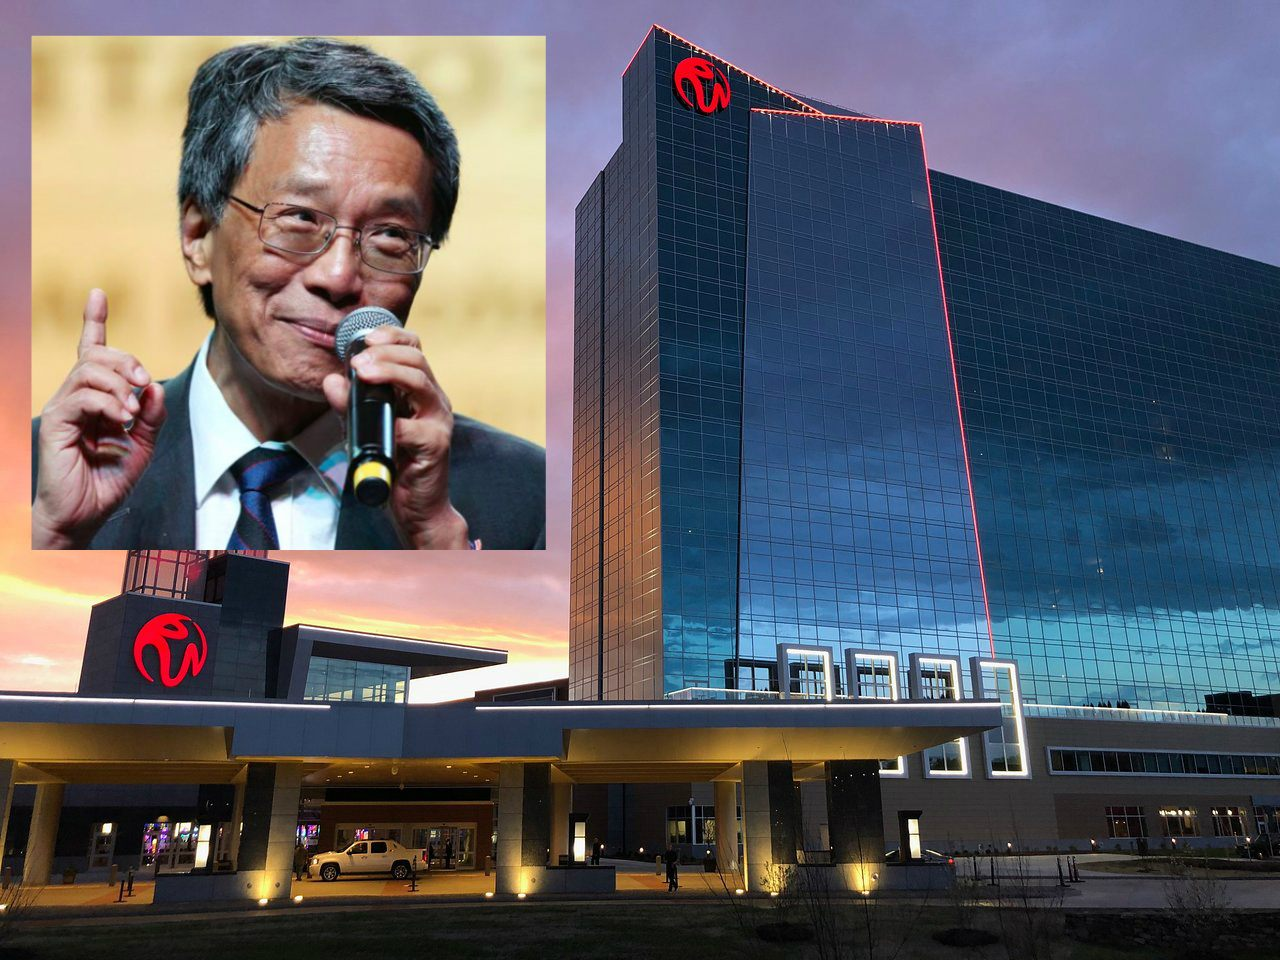 Resorts World Catskills sold New York casino